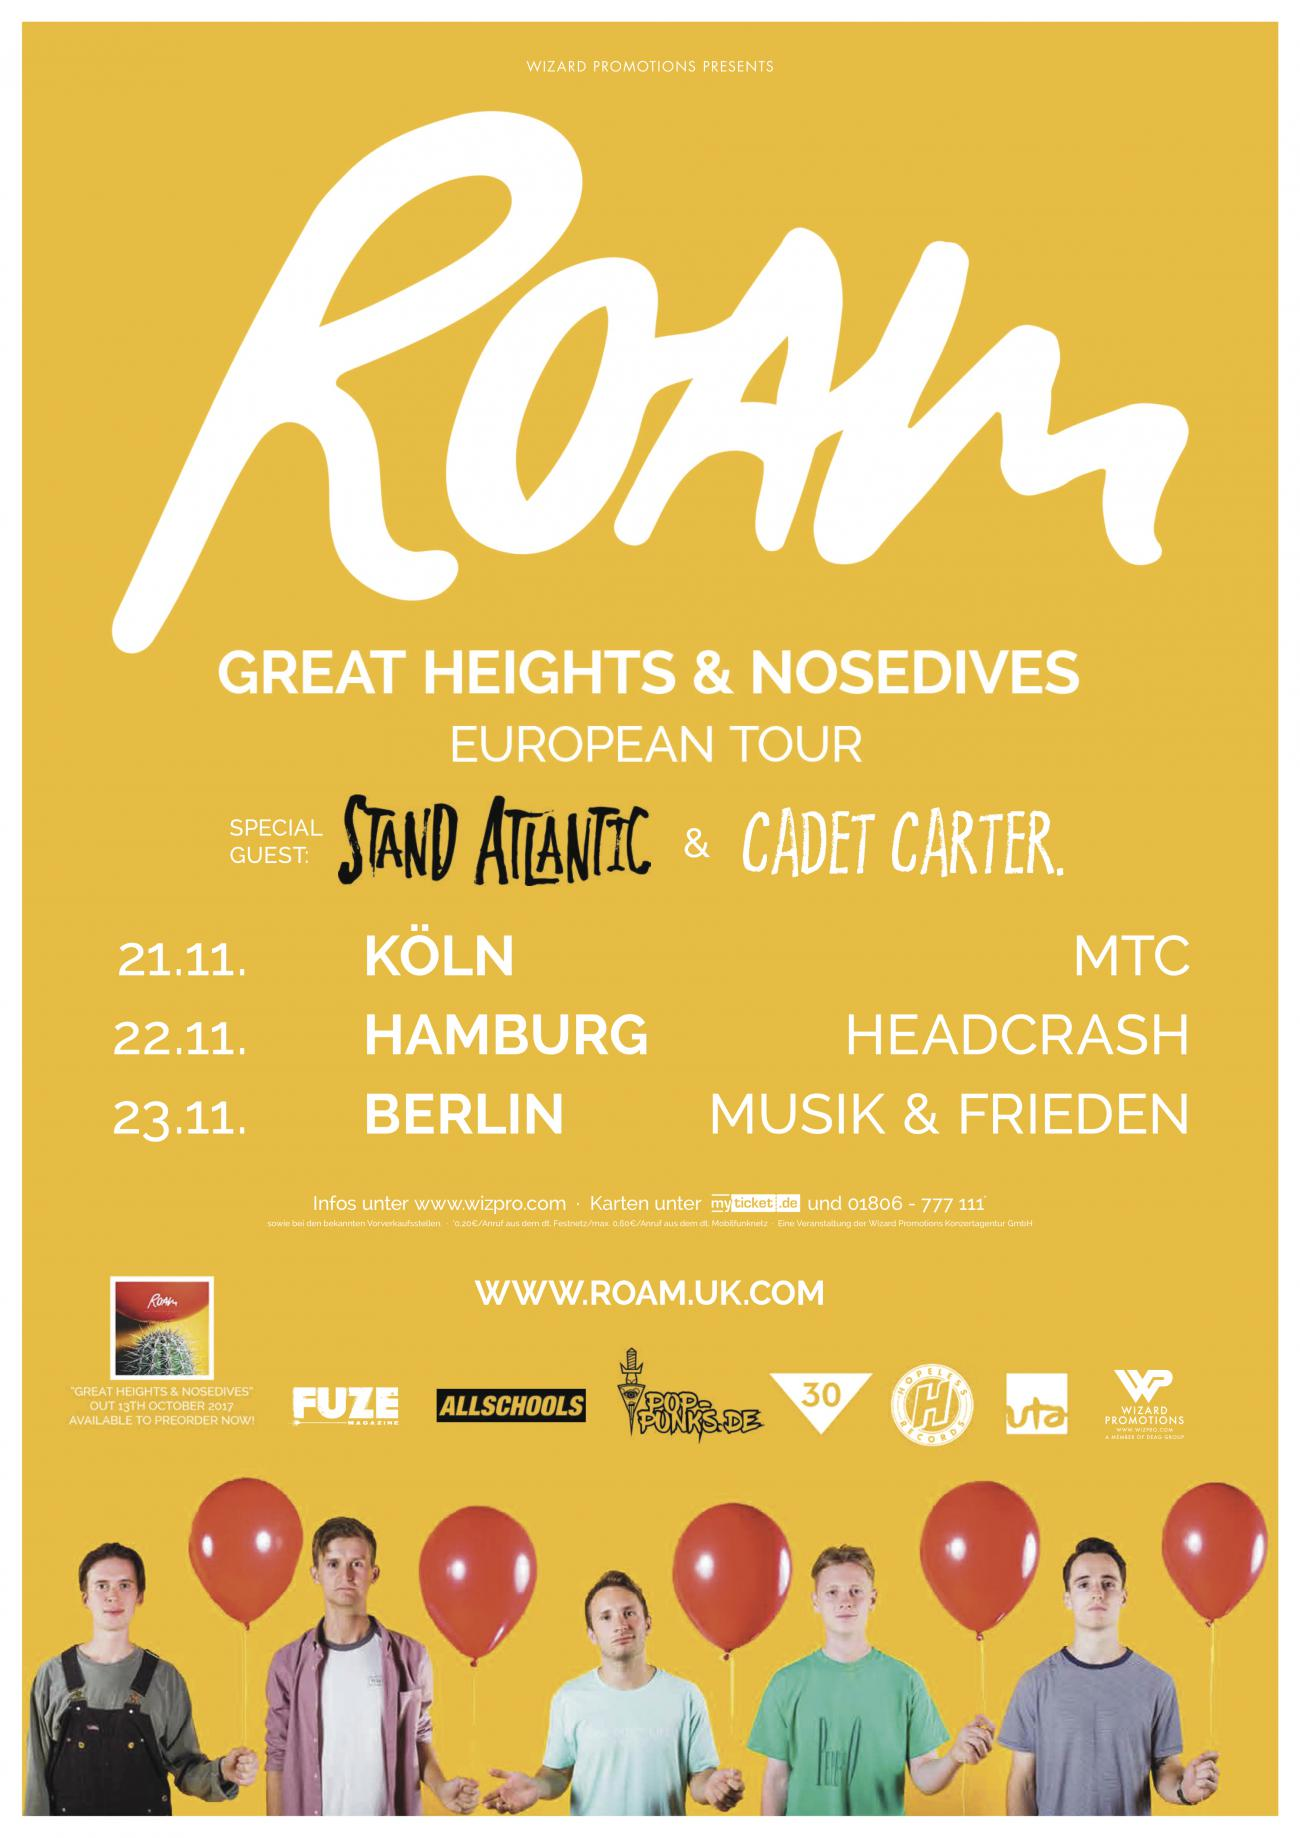 ROAM - Great Heights & Nosedives - European Tour 2017